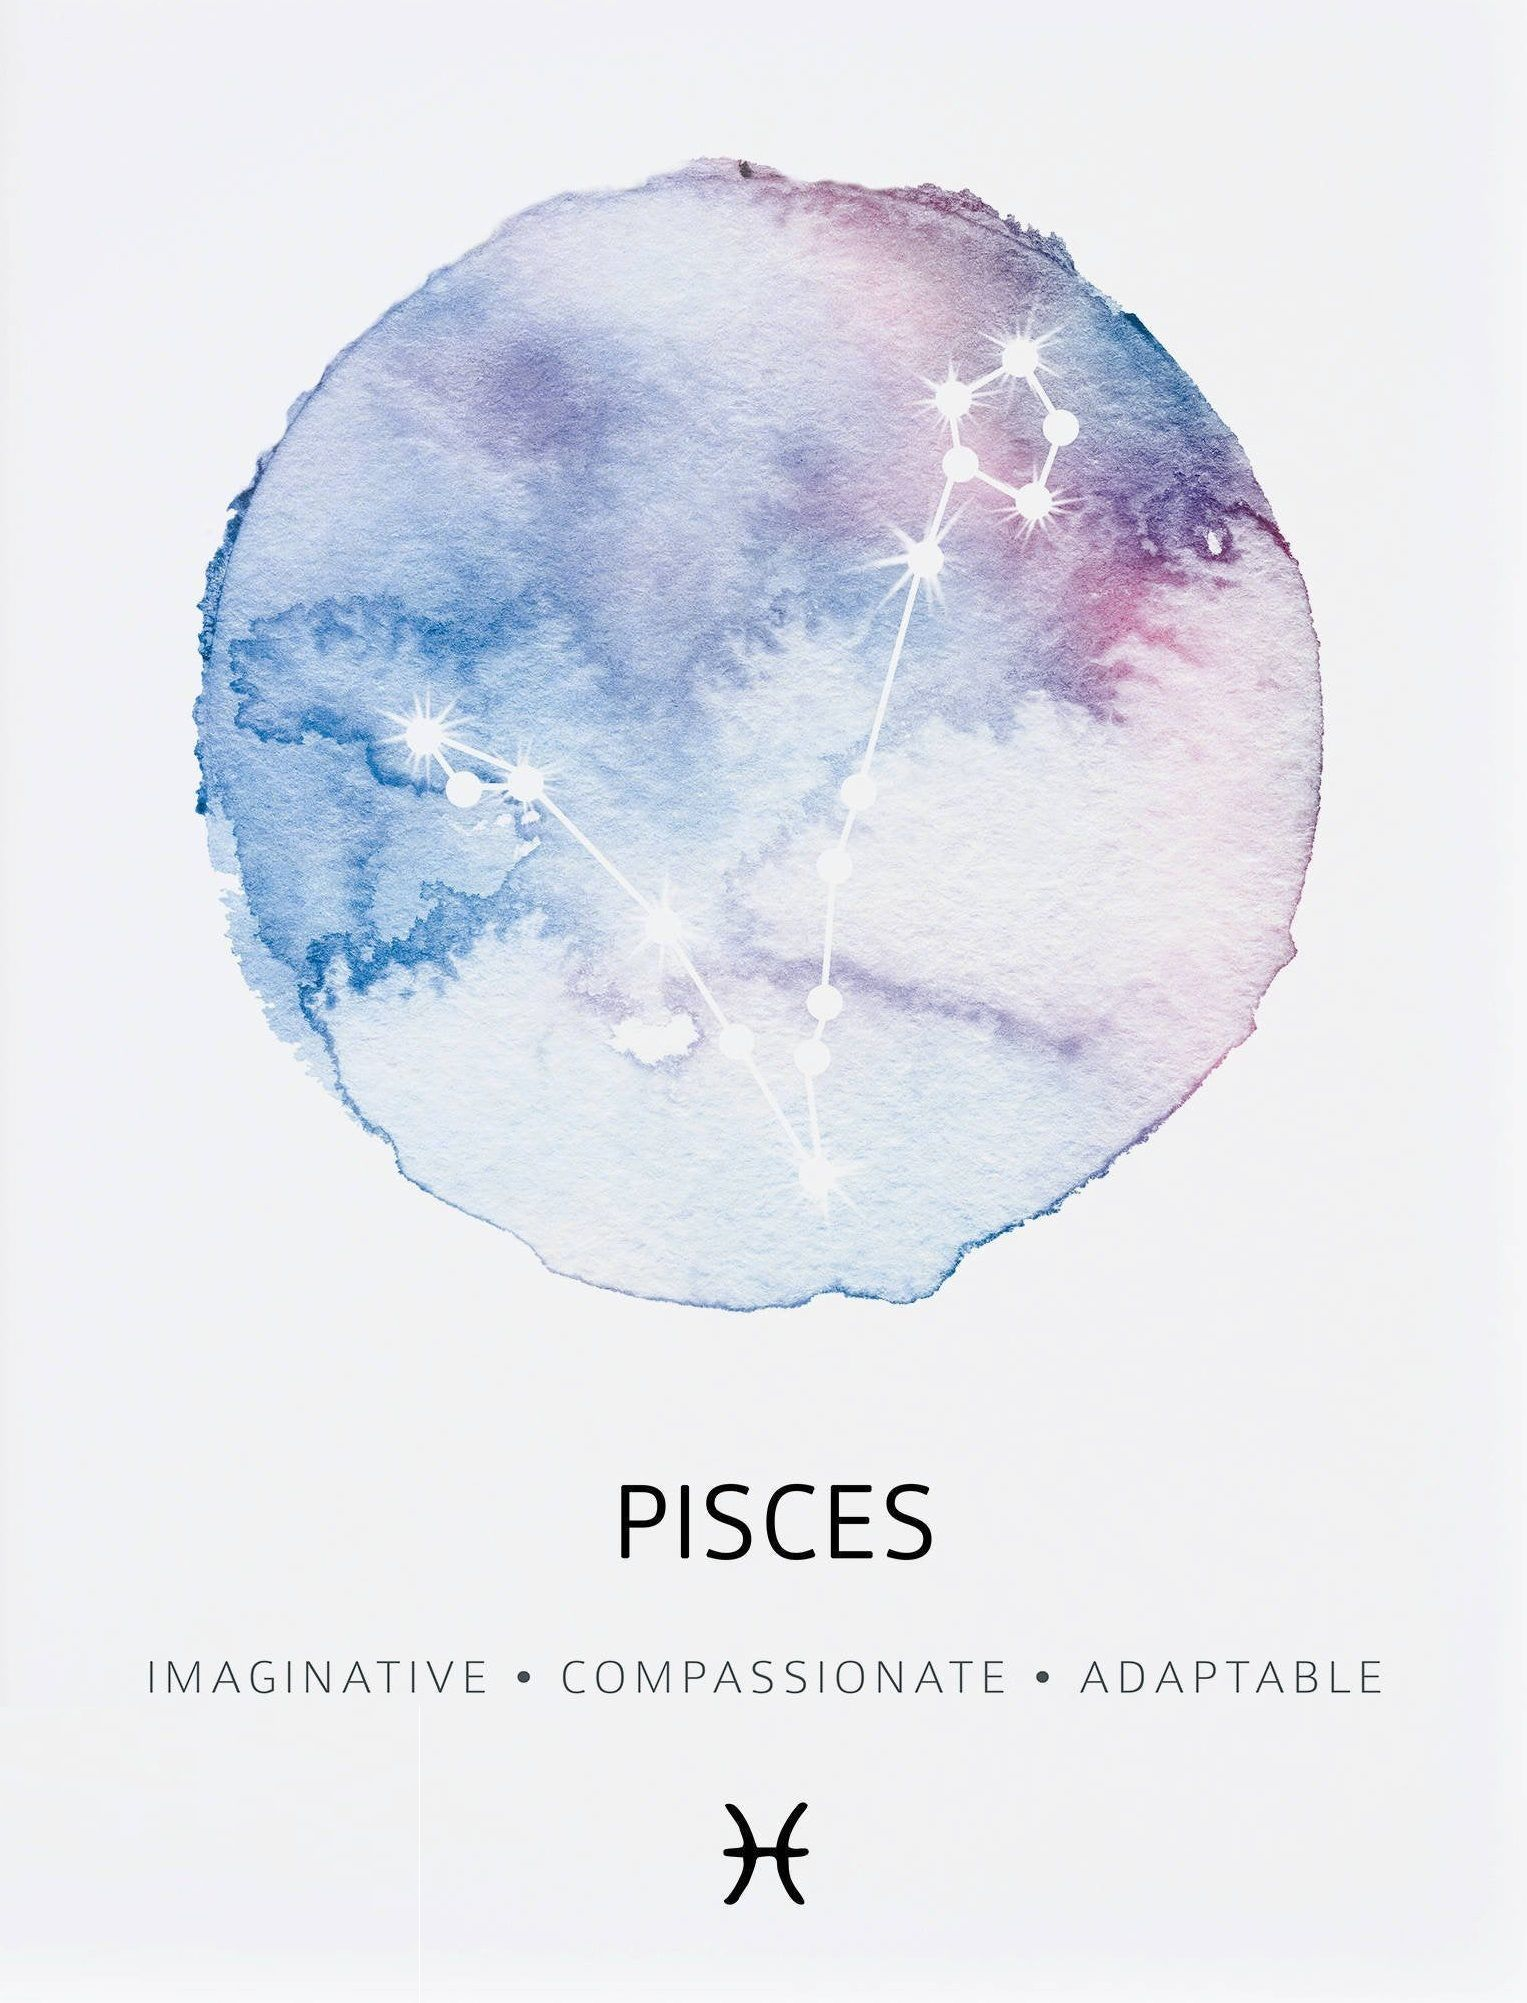 Pisces ~ imaginative, compassionate, adaptable